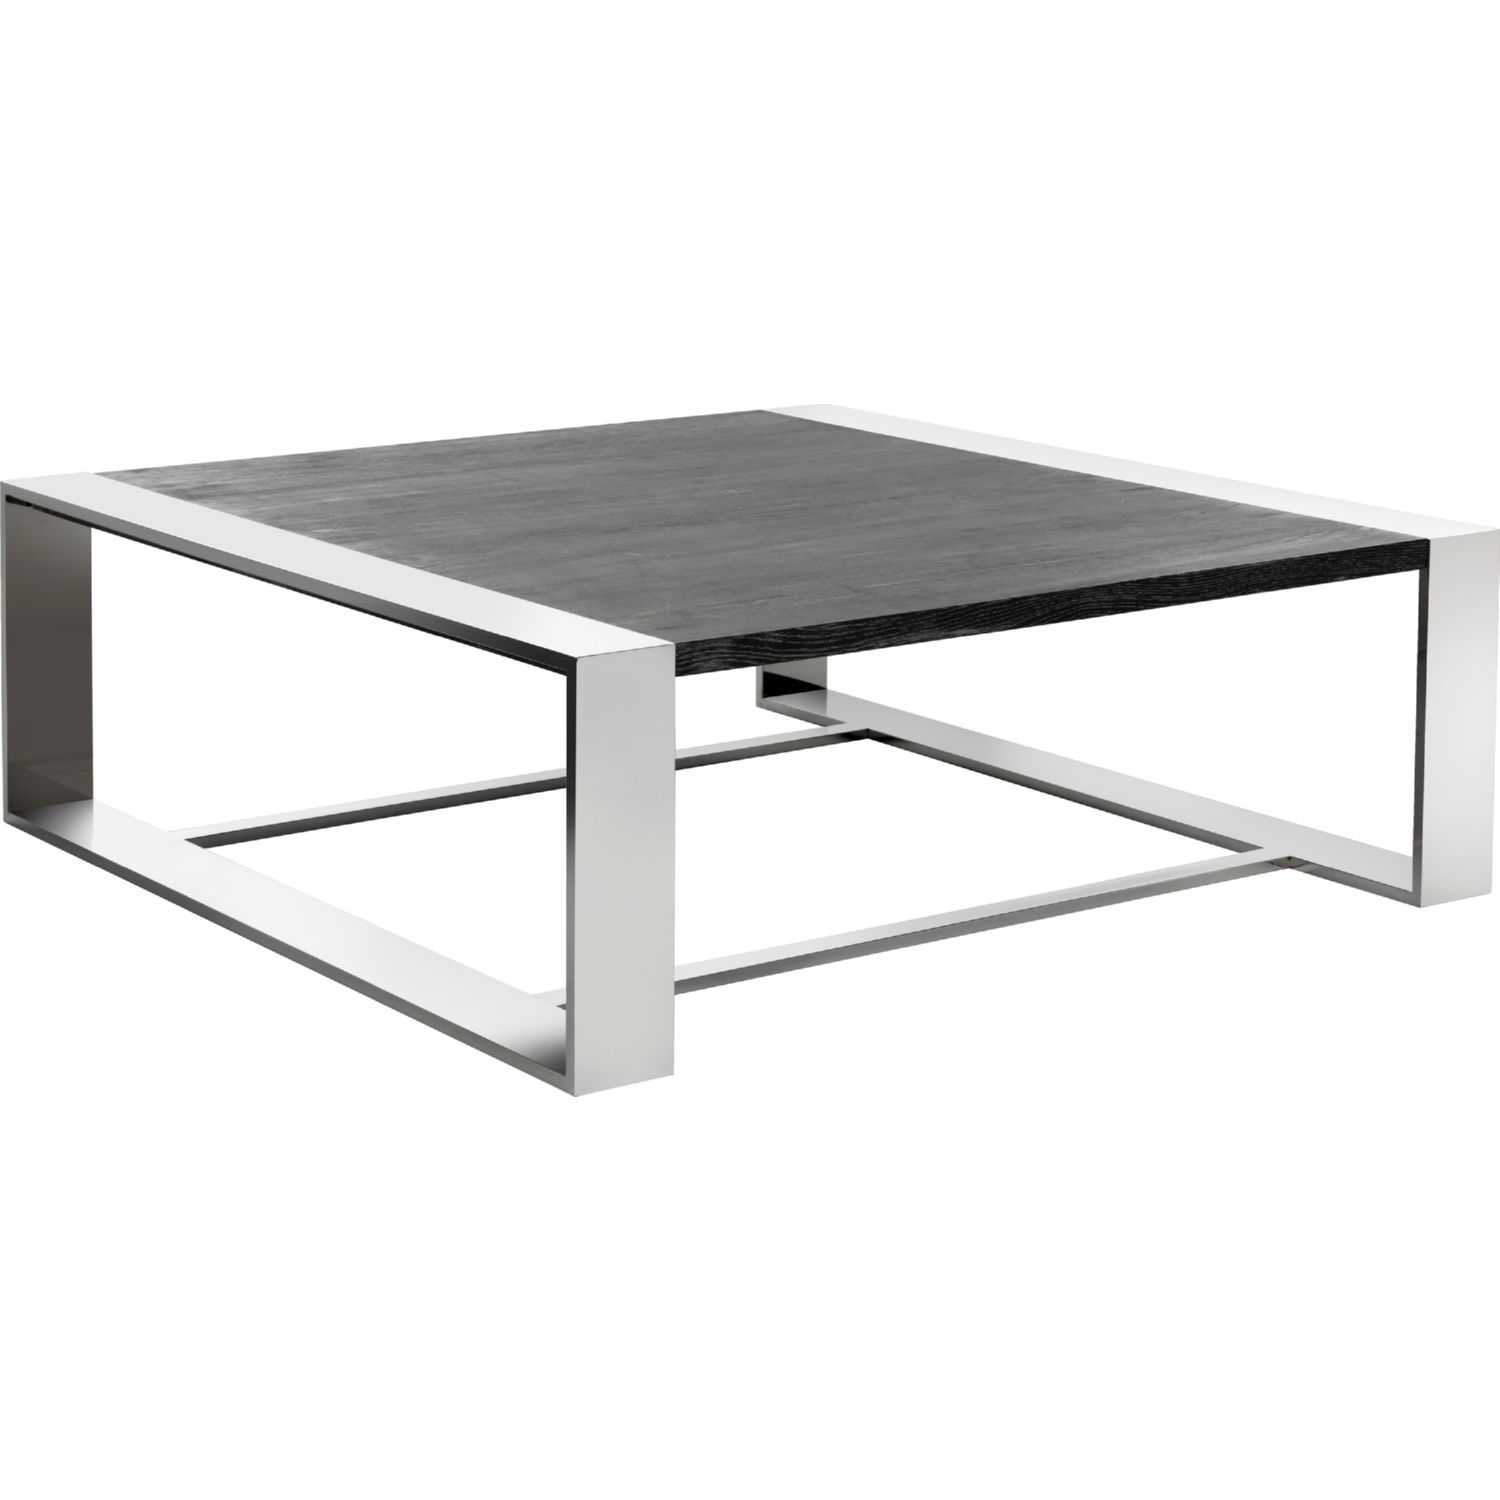 Ordinaire Sunpan Dalton Coffee Table In Polished Stainless U0026 Distressed Grey. Tap To  Expand